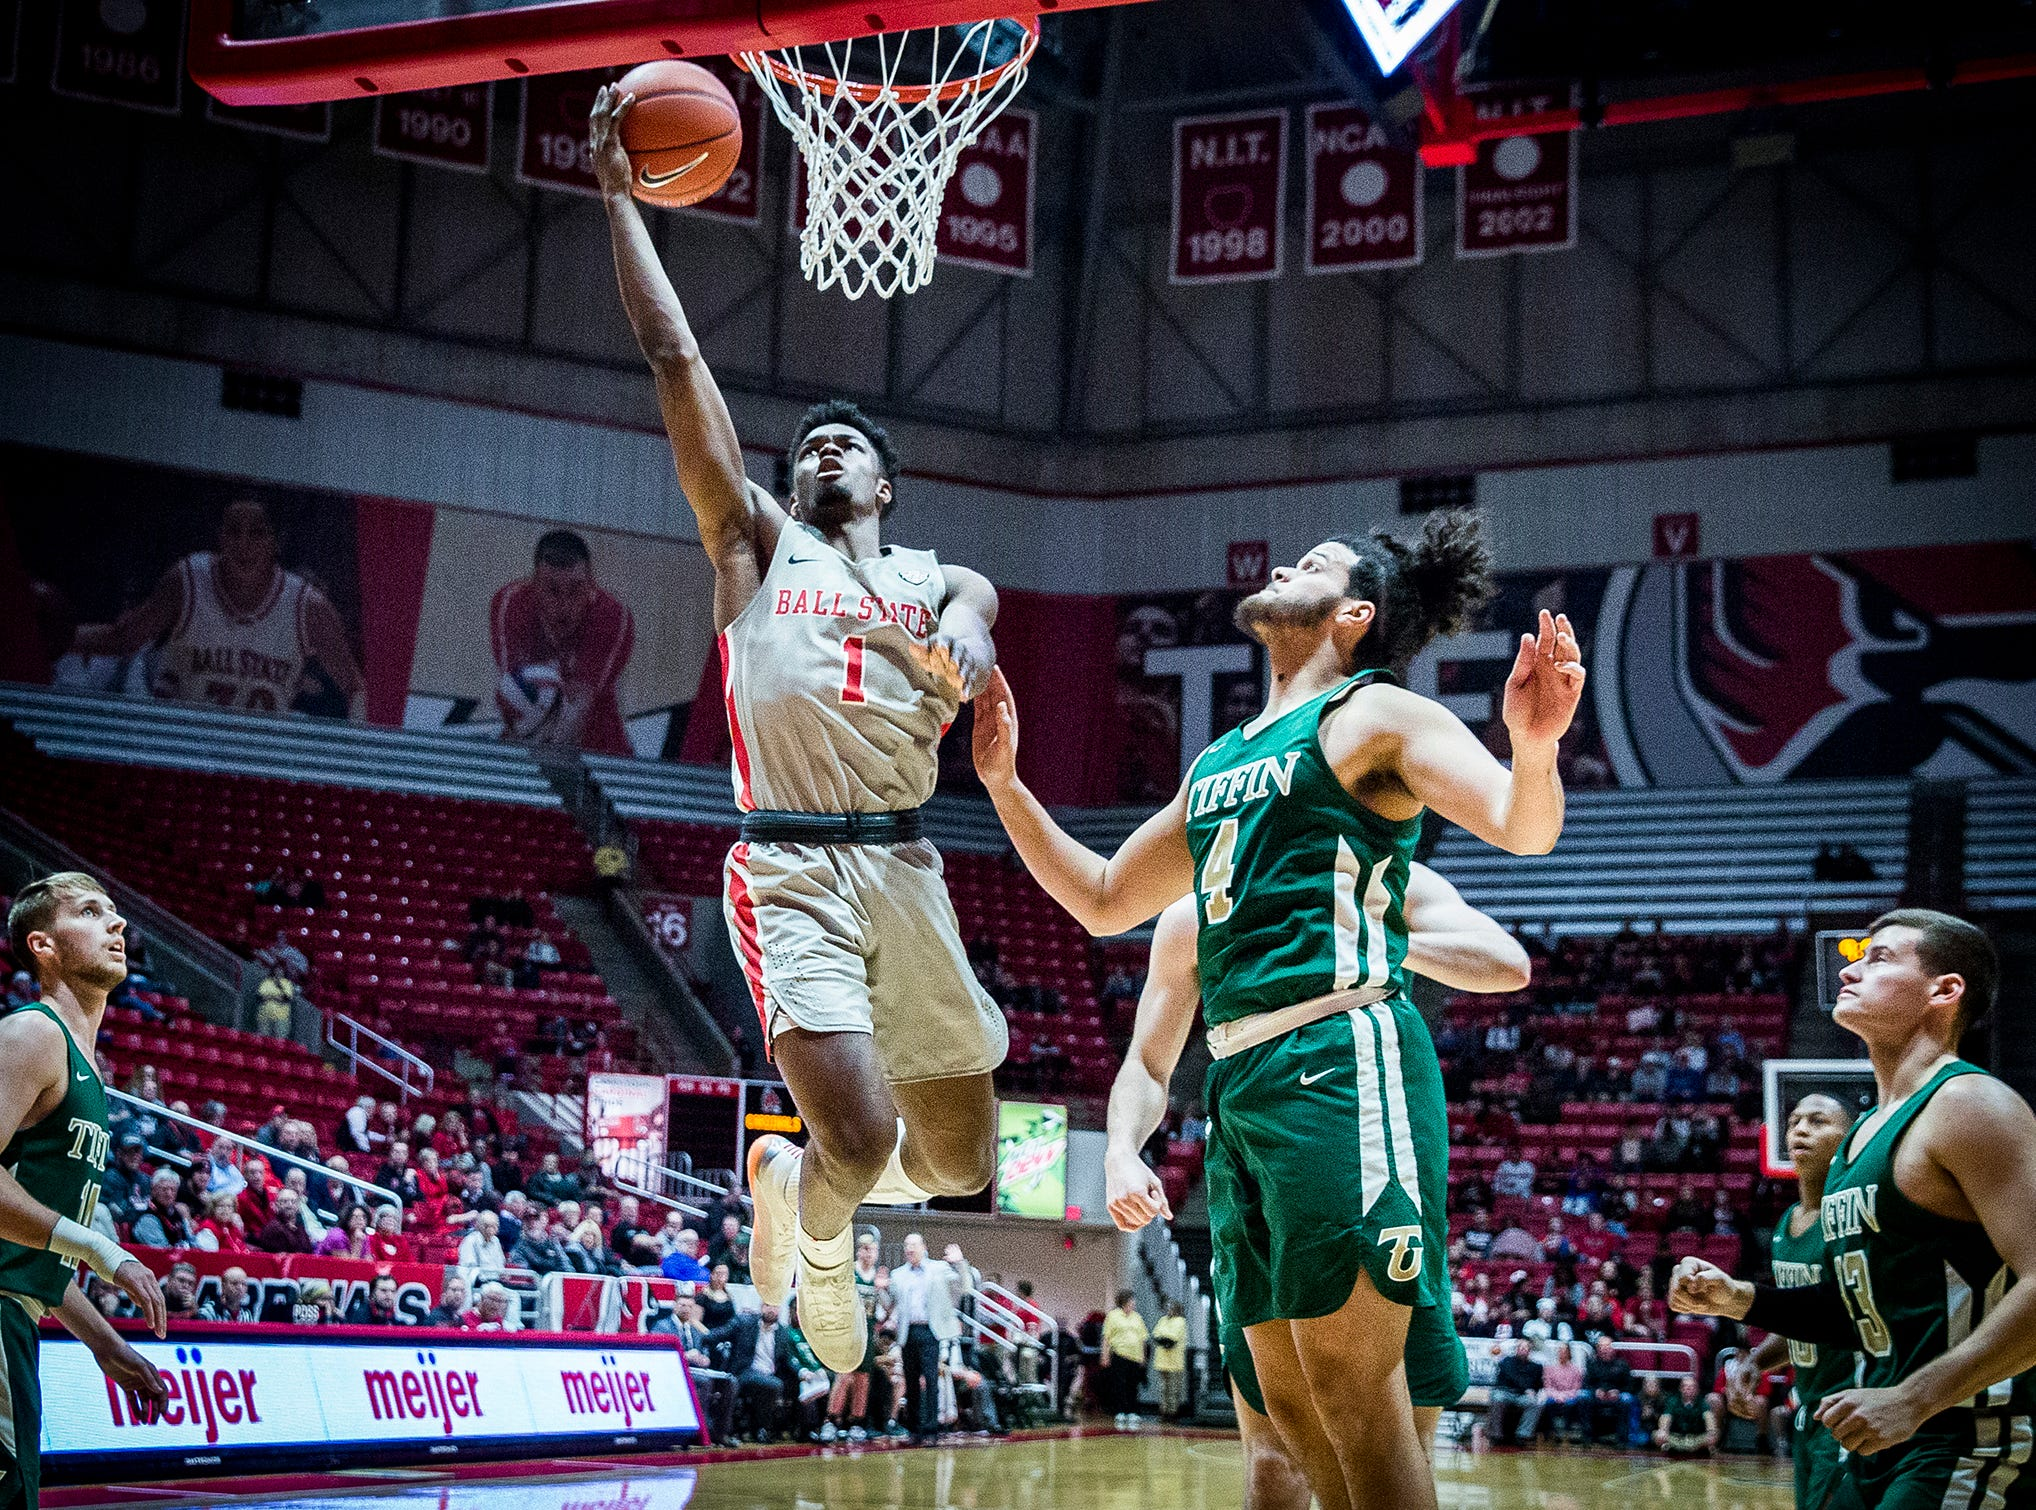 Ball State's KJ Walton shoots past Tiffin's defense during their game at Worthen Arena Tuesday, Nov. 27, 2018.